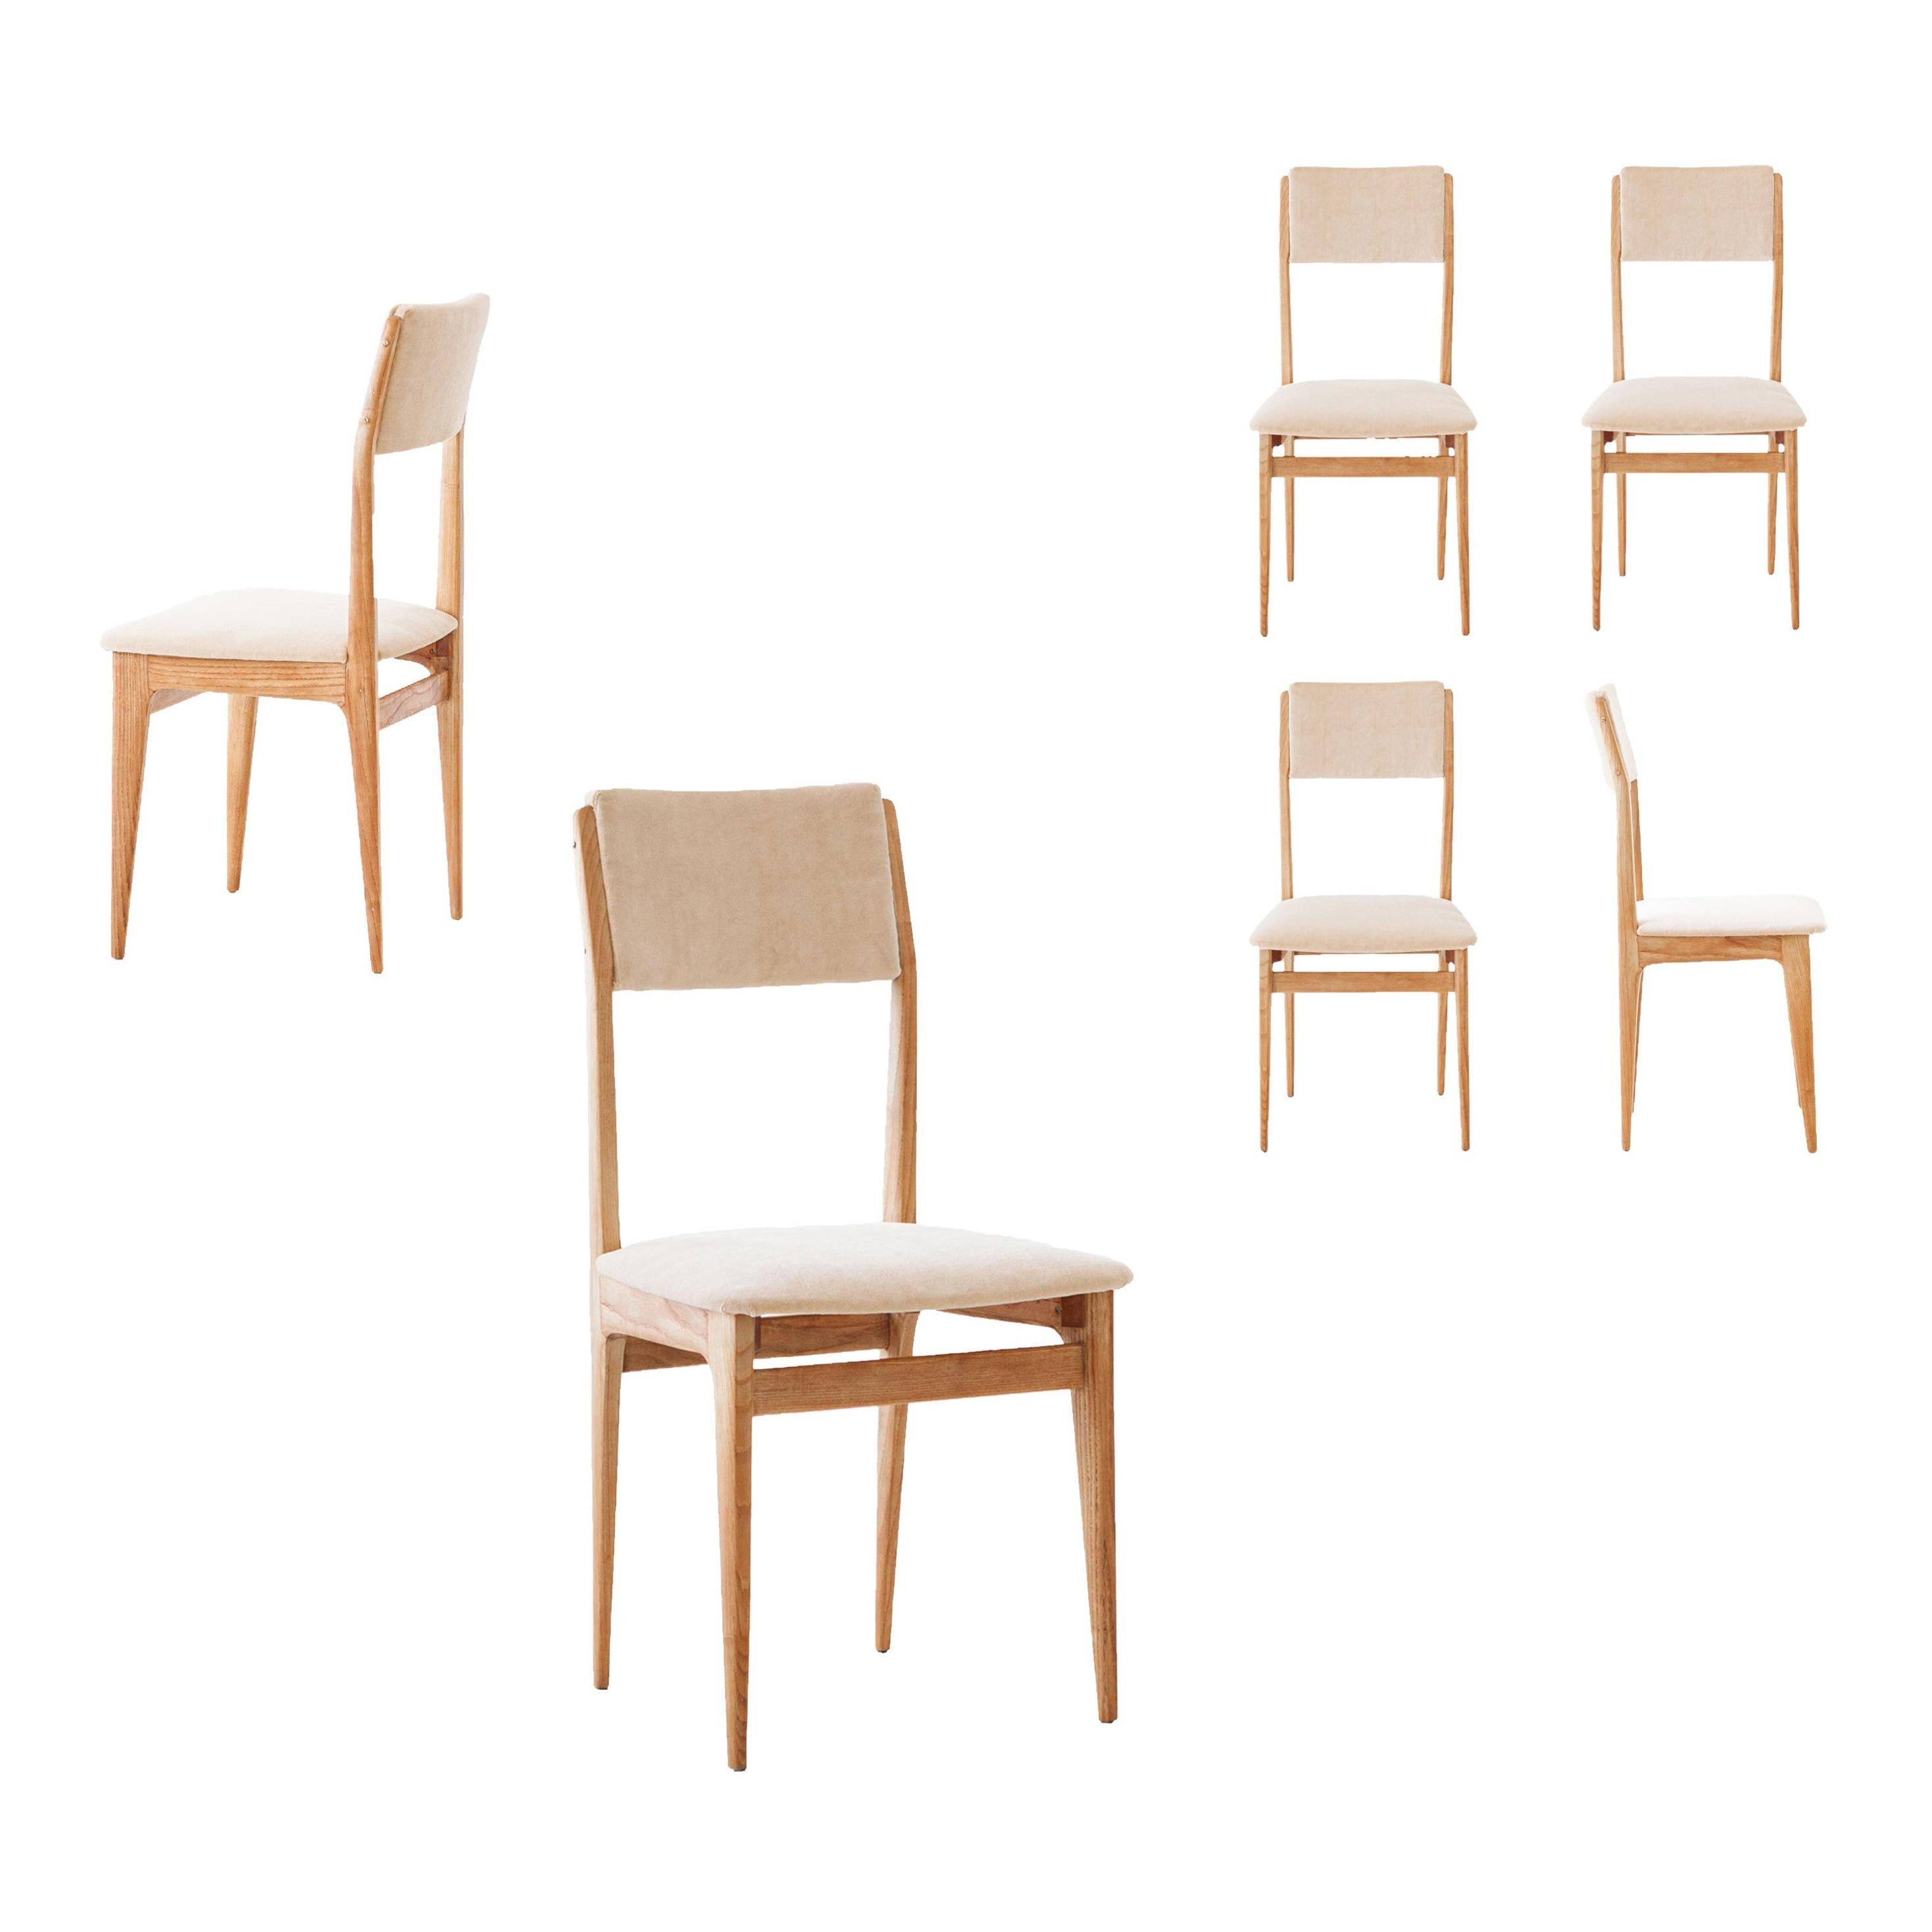 Six Italian Dining Chairs in Oak and Sand Velvet, 1950s